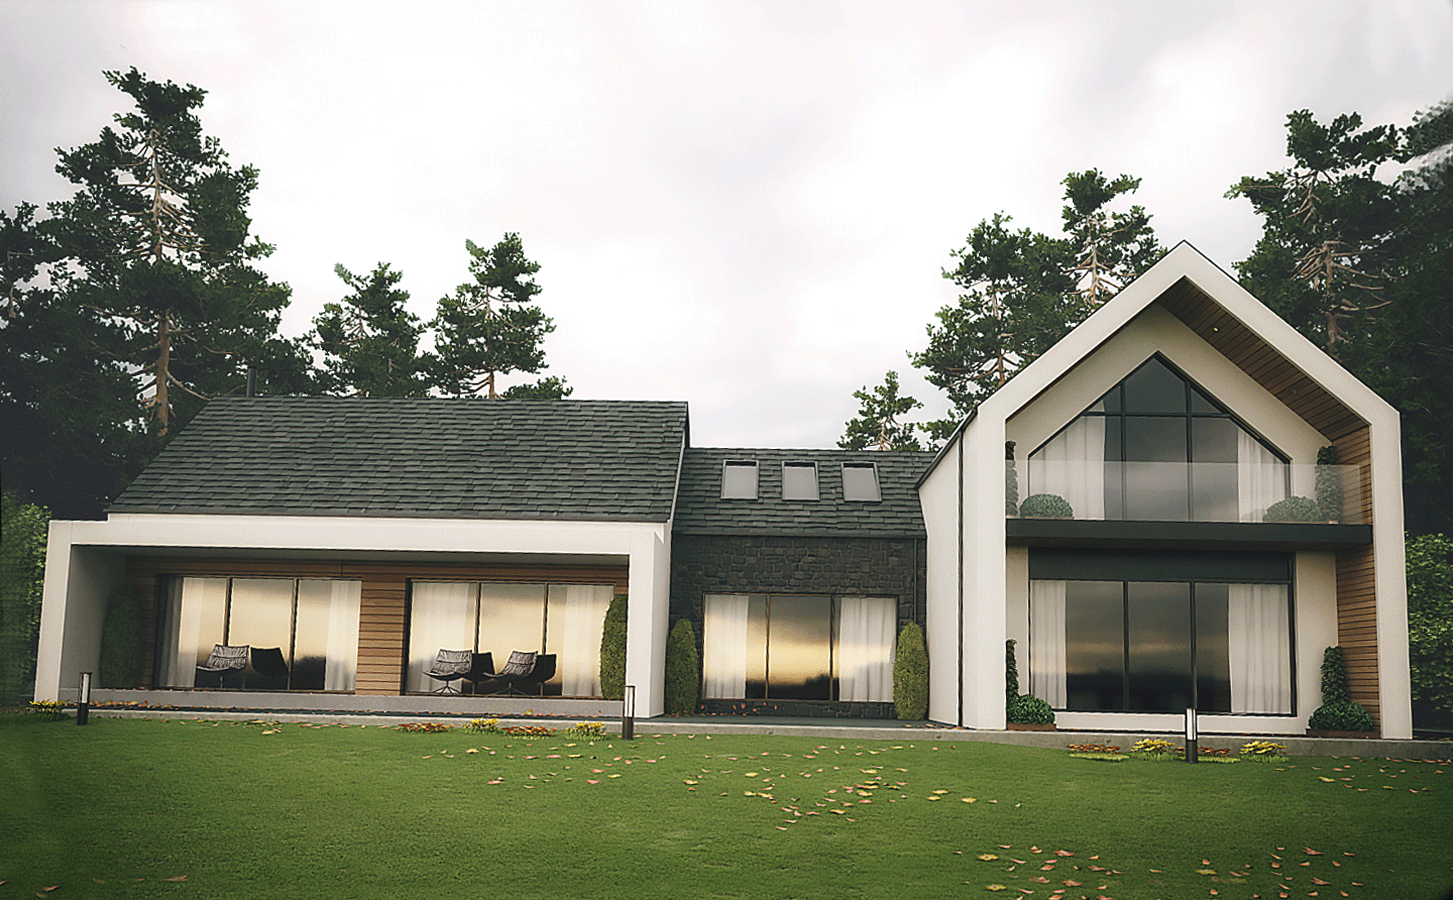 Modern replacement house dromintee slieve gullion forest park newry county armagh designed by ballymena architects slemish design studio